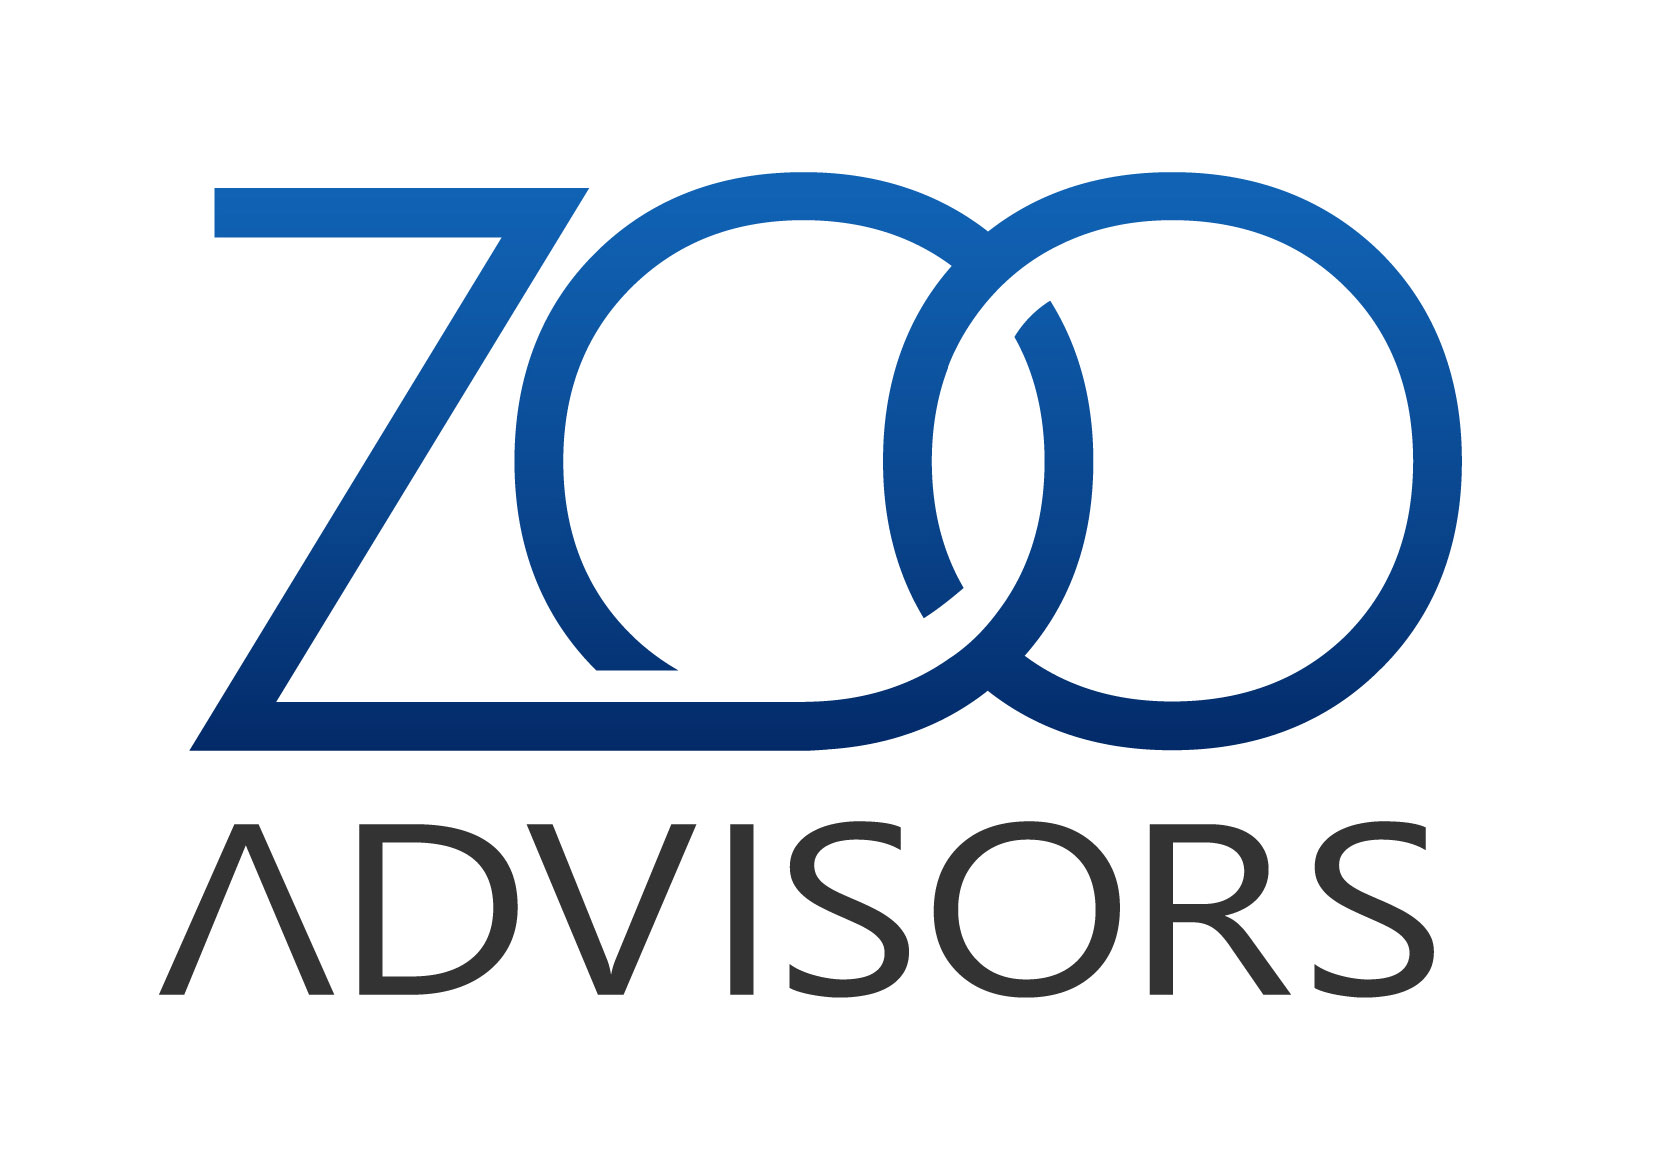 Logo Image of Zoo Advisors. The word Zoo is in blue font. The Z loops into the O. The second O is chained to the first O. The word advisors is underneath and is gray font.